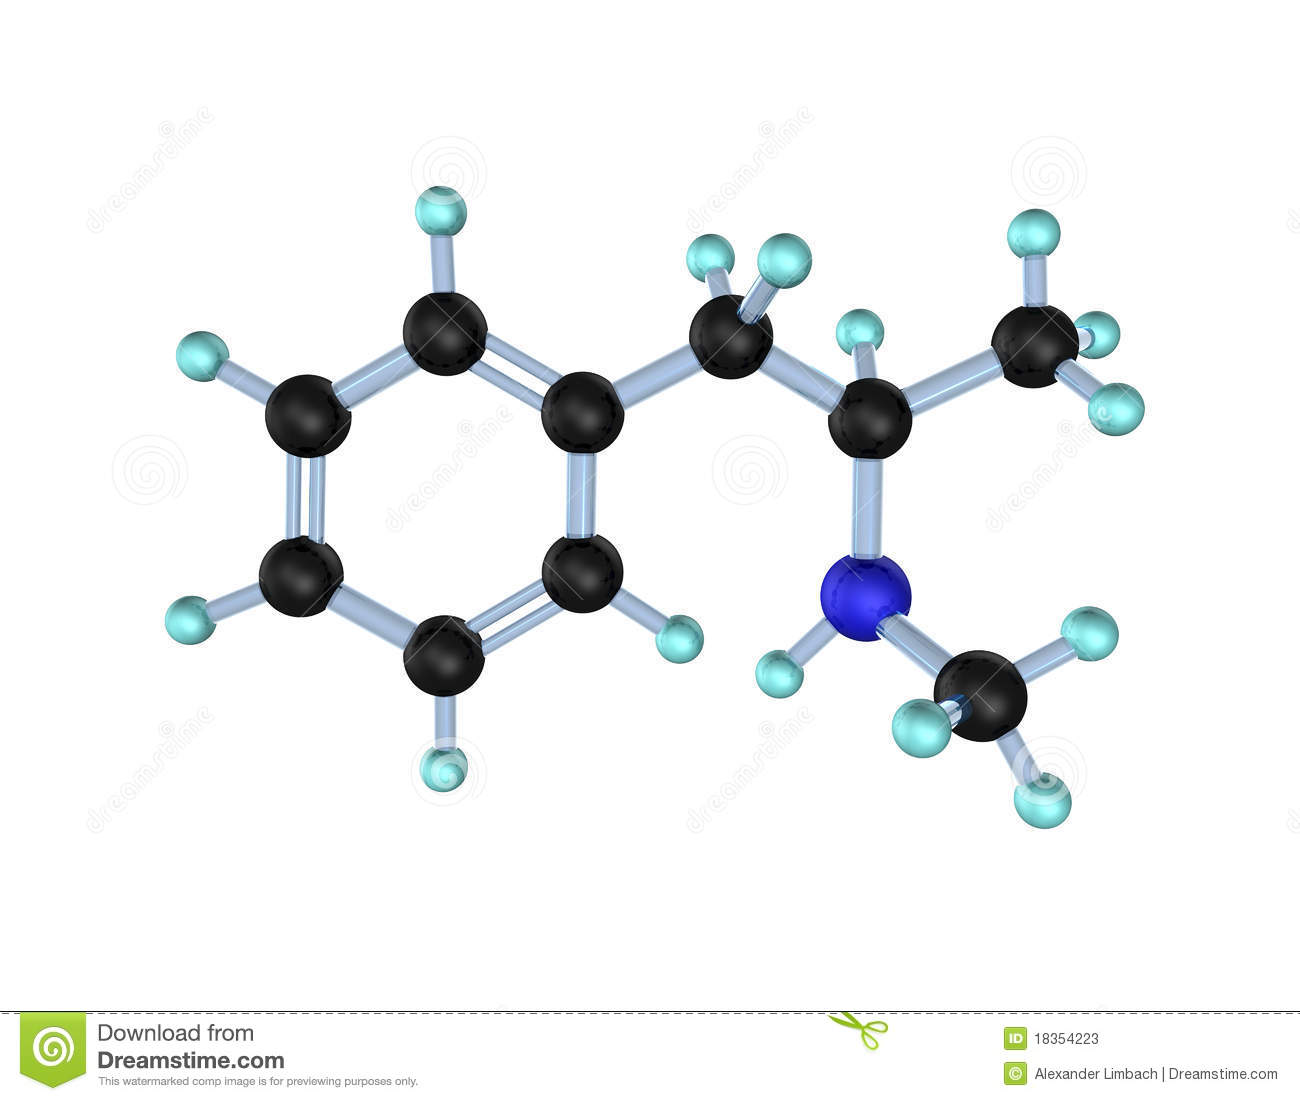 Methamphetamine molecule